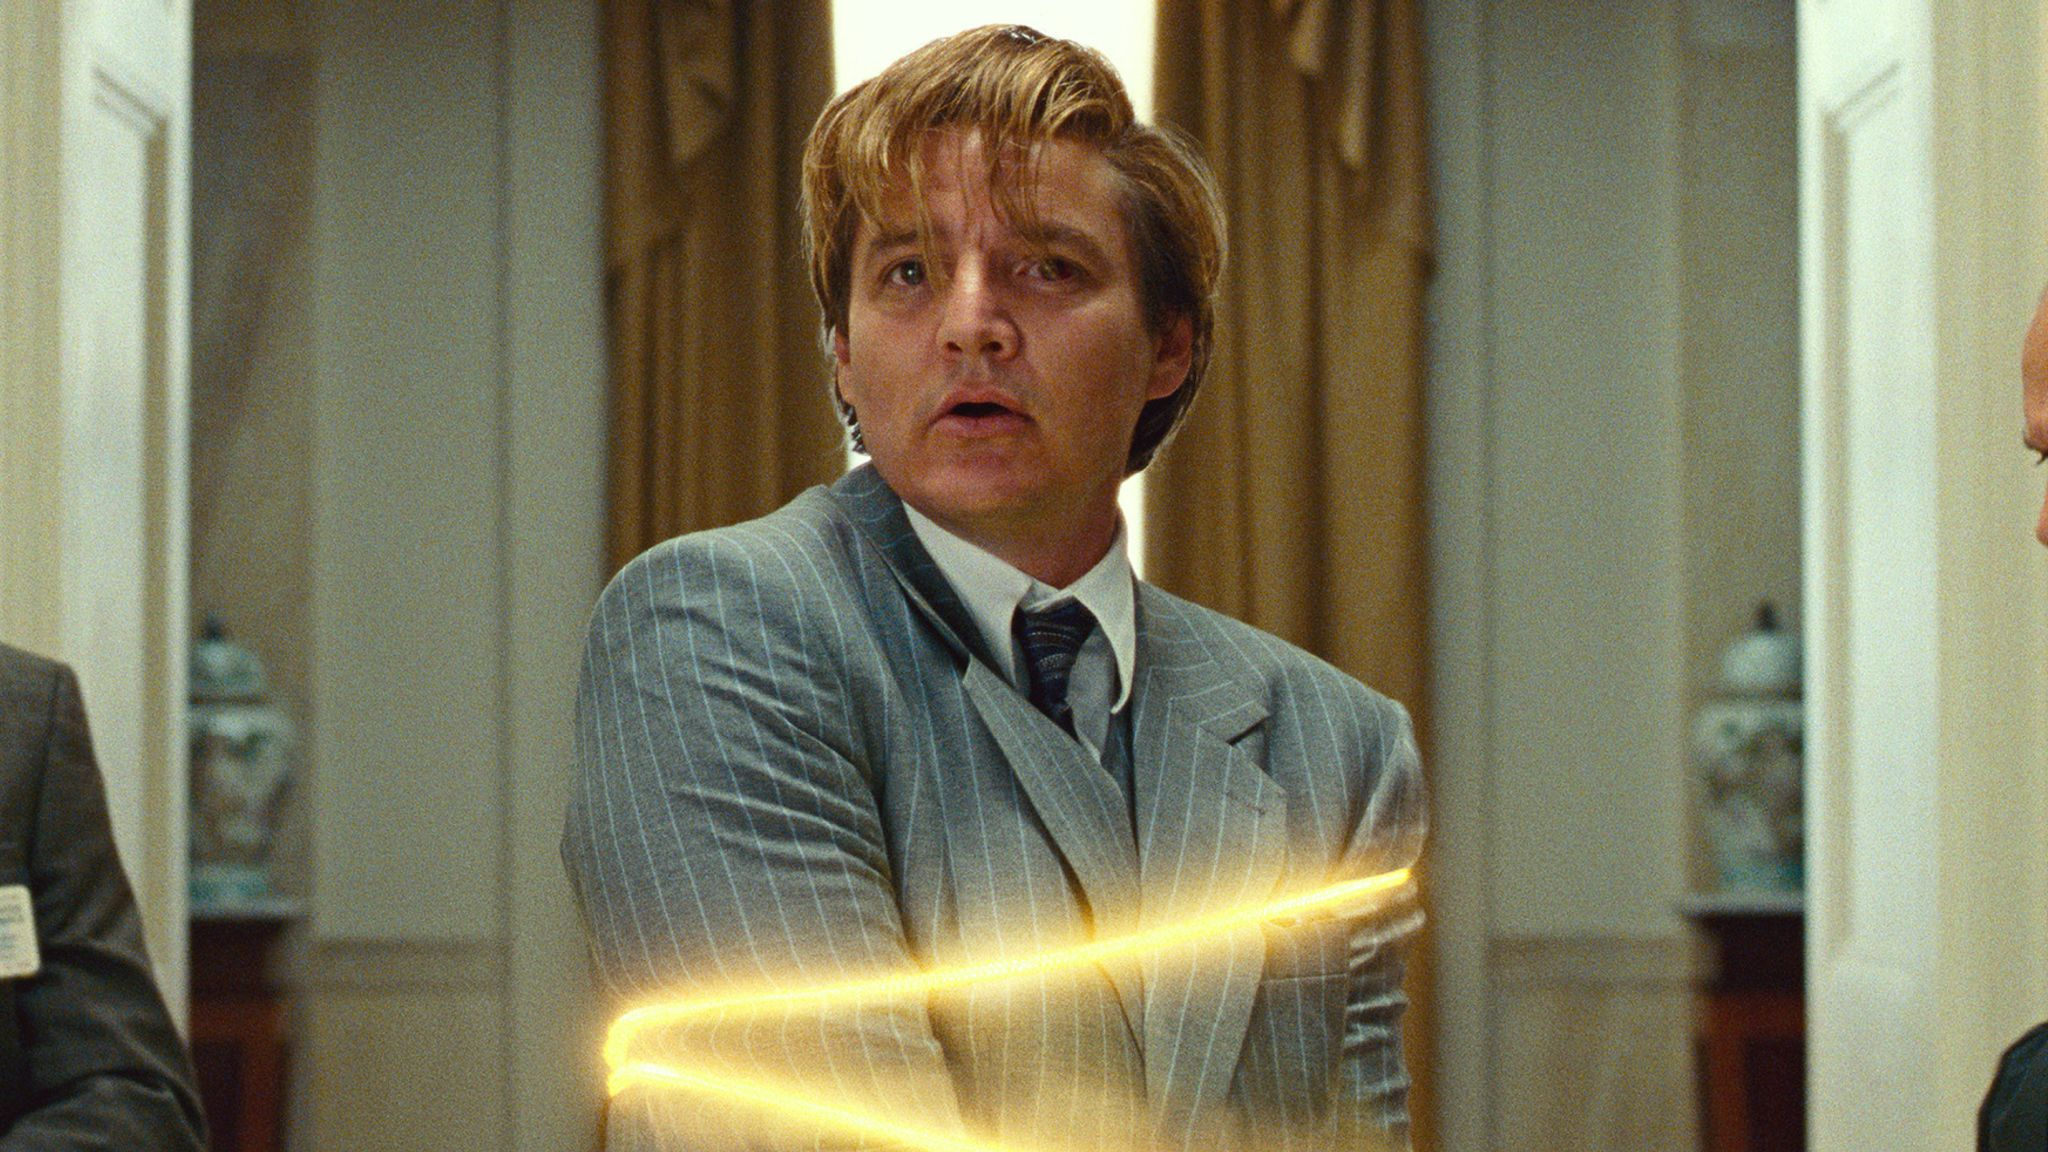 Pedro Pascal is gloriously evil as Max Lord. Pic: Warner Bros